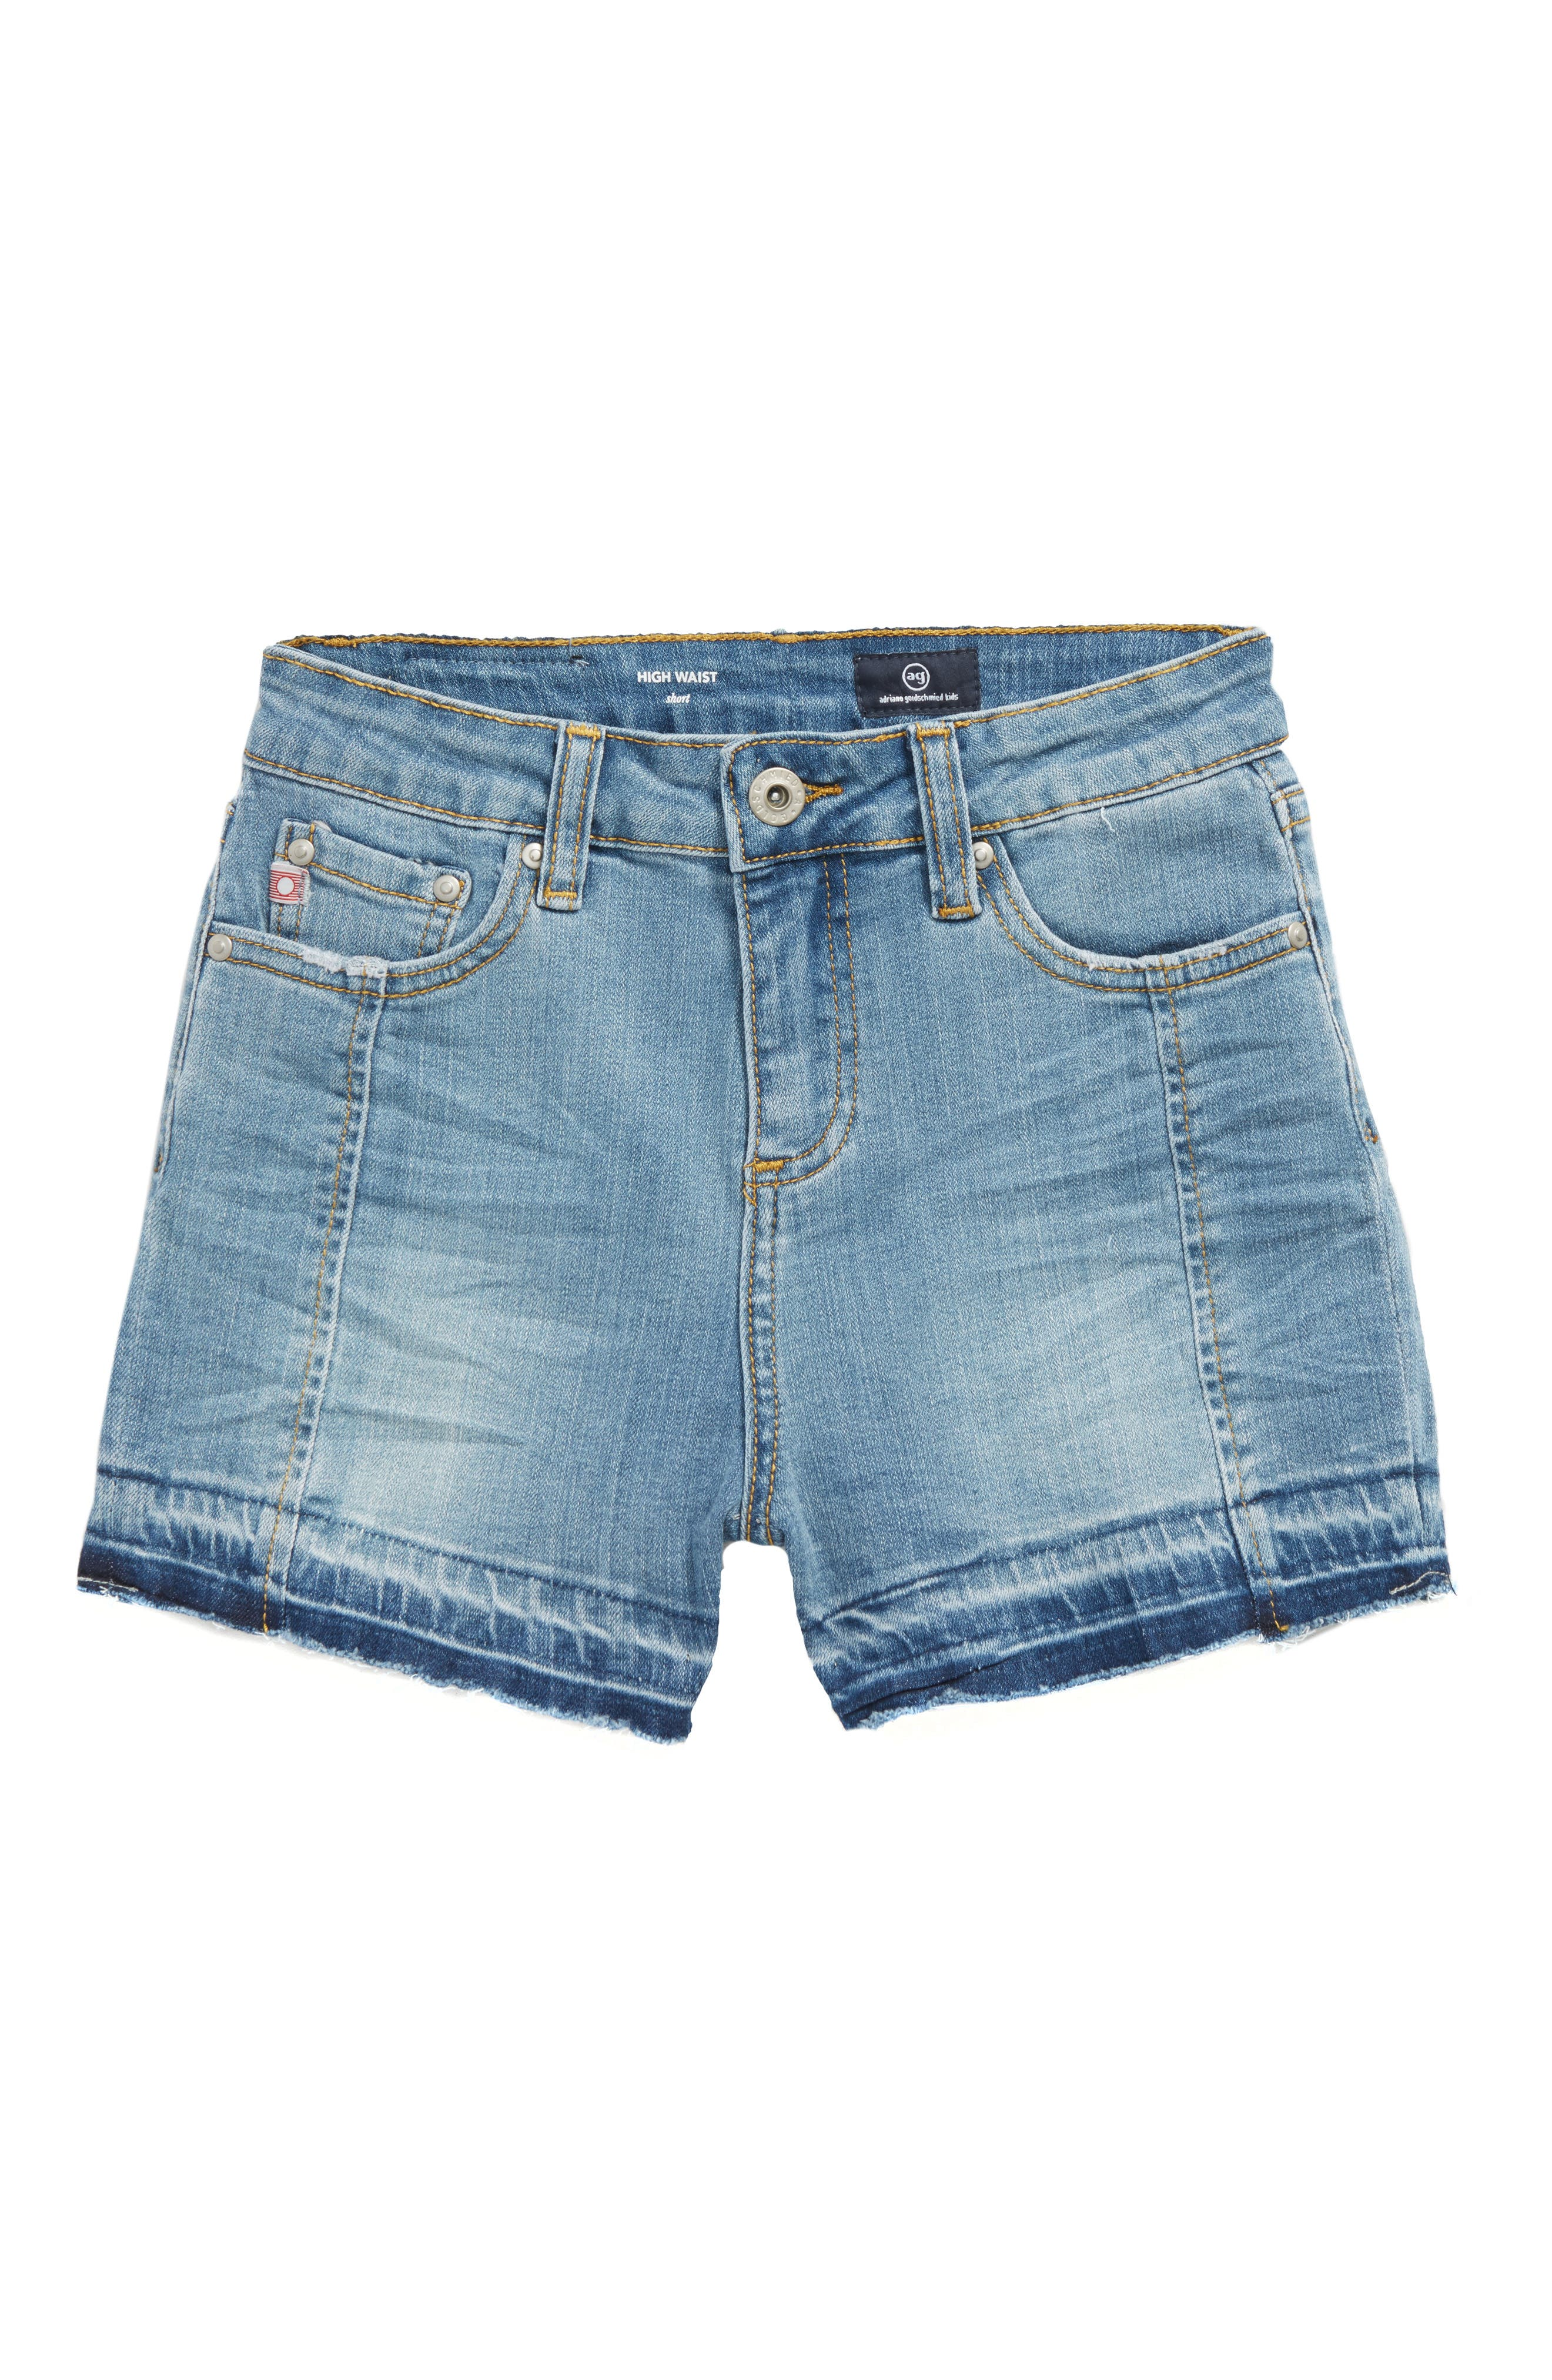 Alternate Image 1 Selected - ag adriano goldschmied kids Released Hem High Waist Shorts (Big Girls)